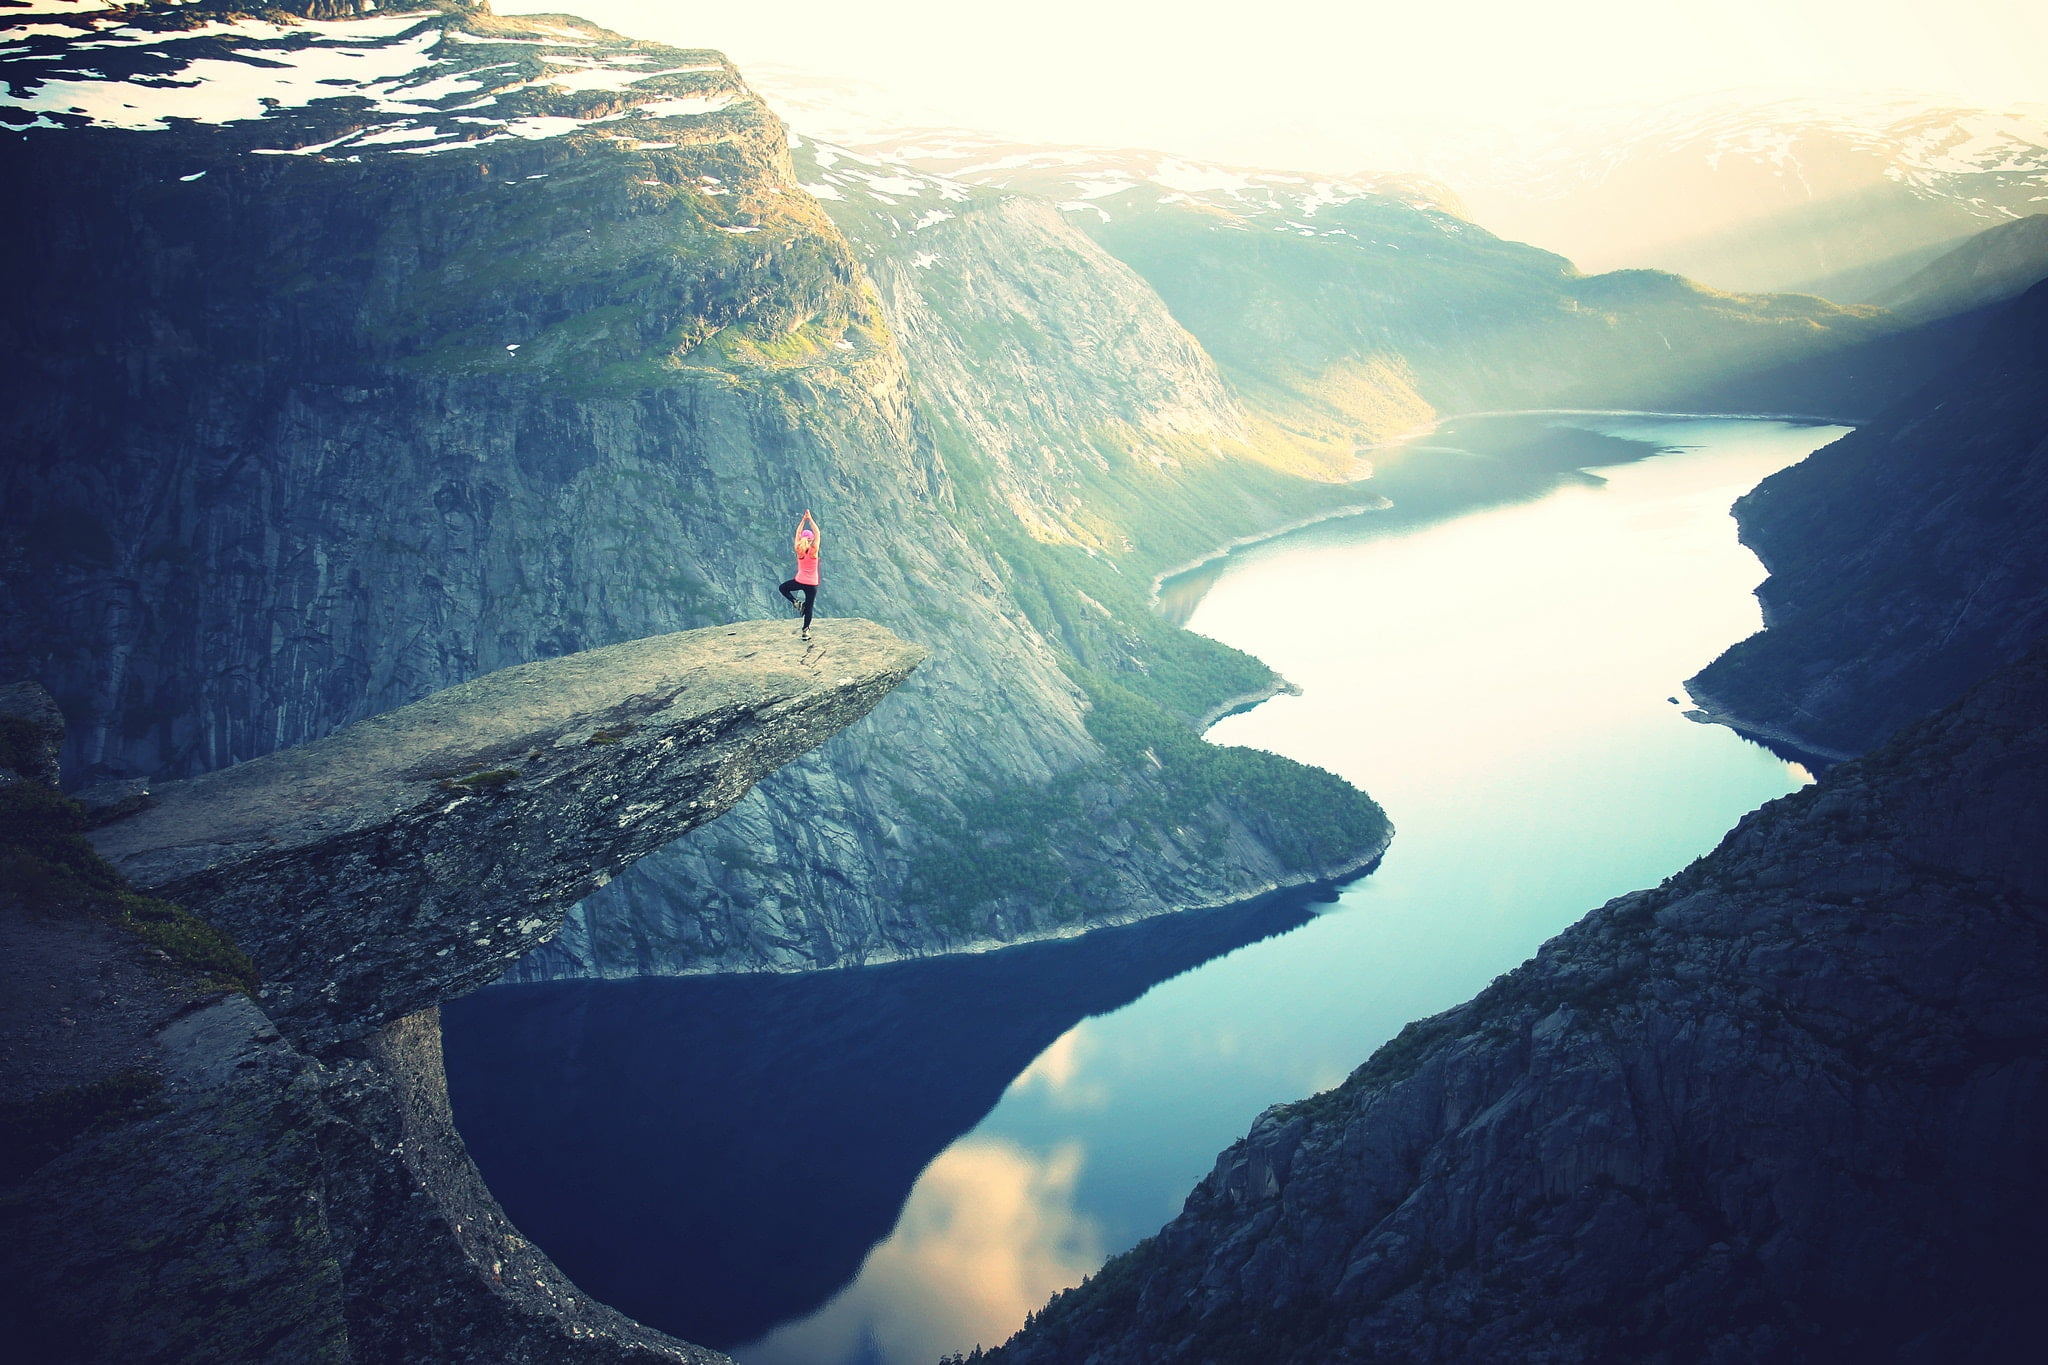 Woman on a high mountain ledge overlooking a river.